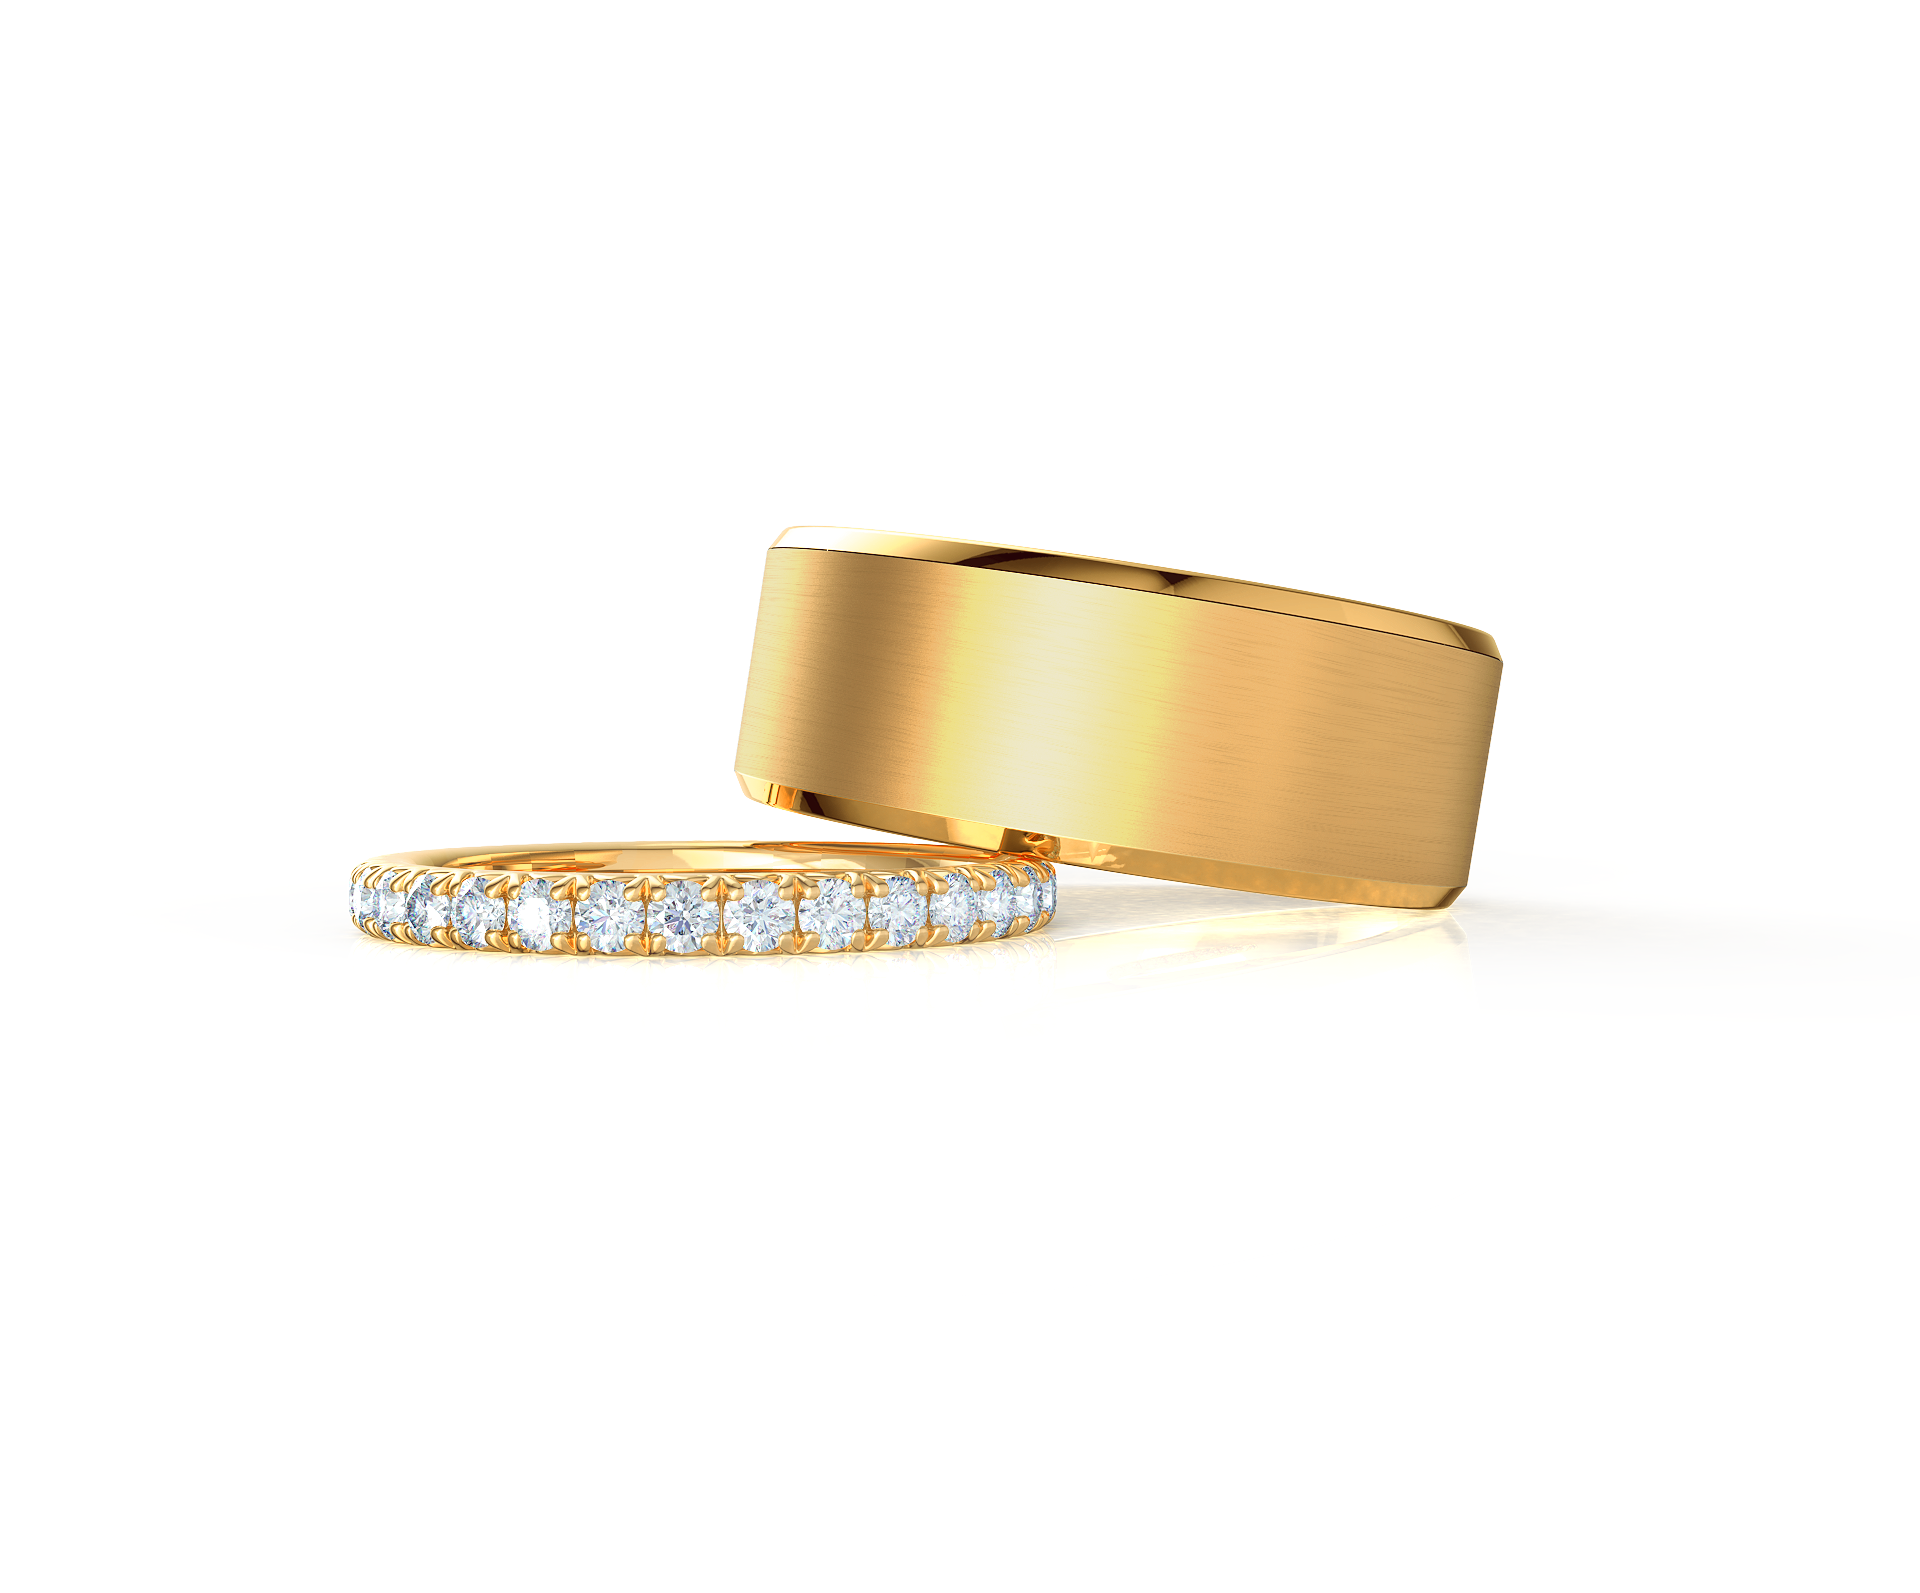 Pair your French Pavé Eternity Band with a Matte Beveled Ring    Shop Now